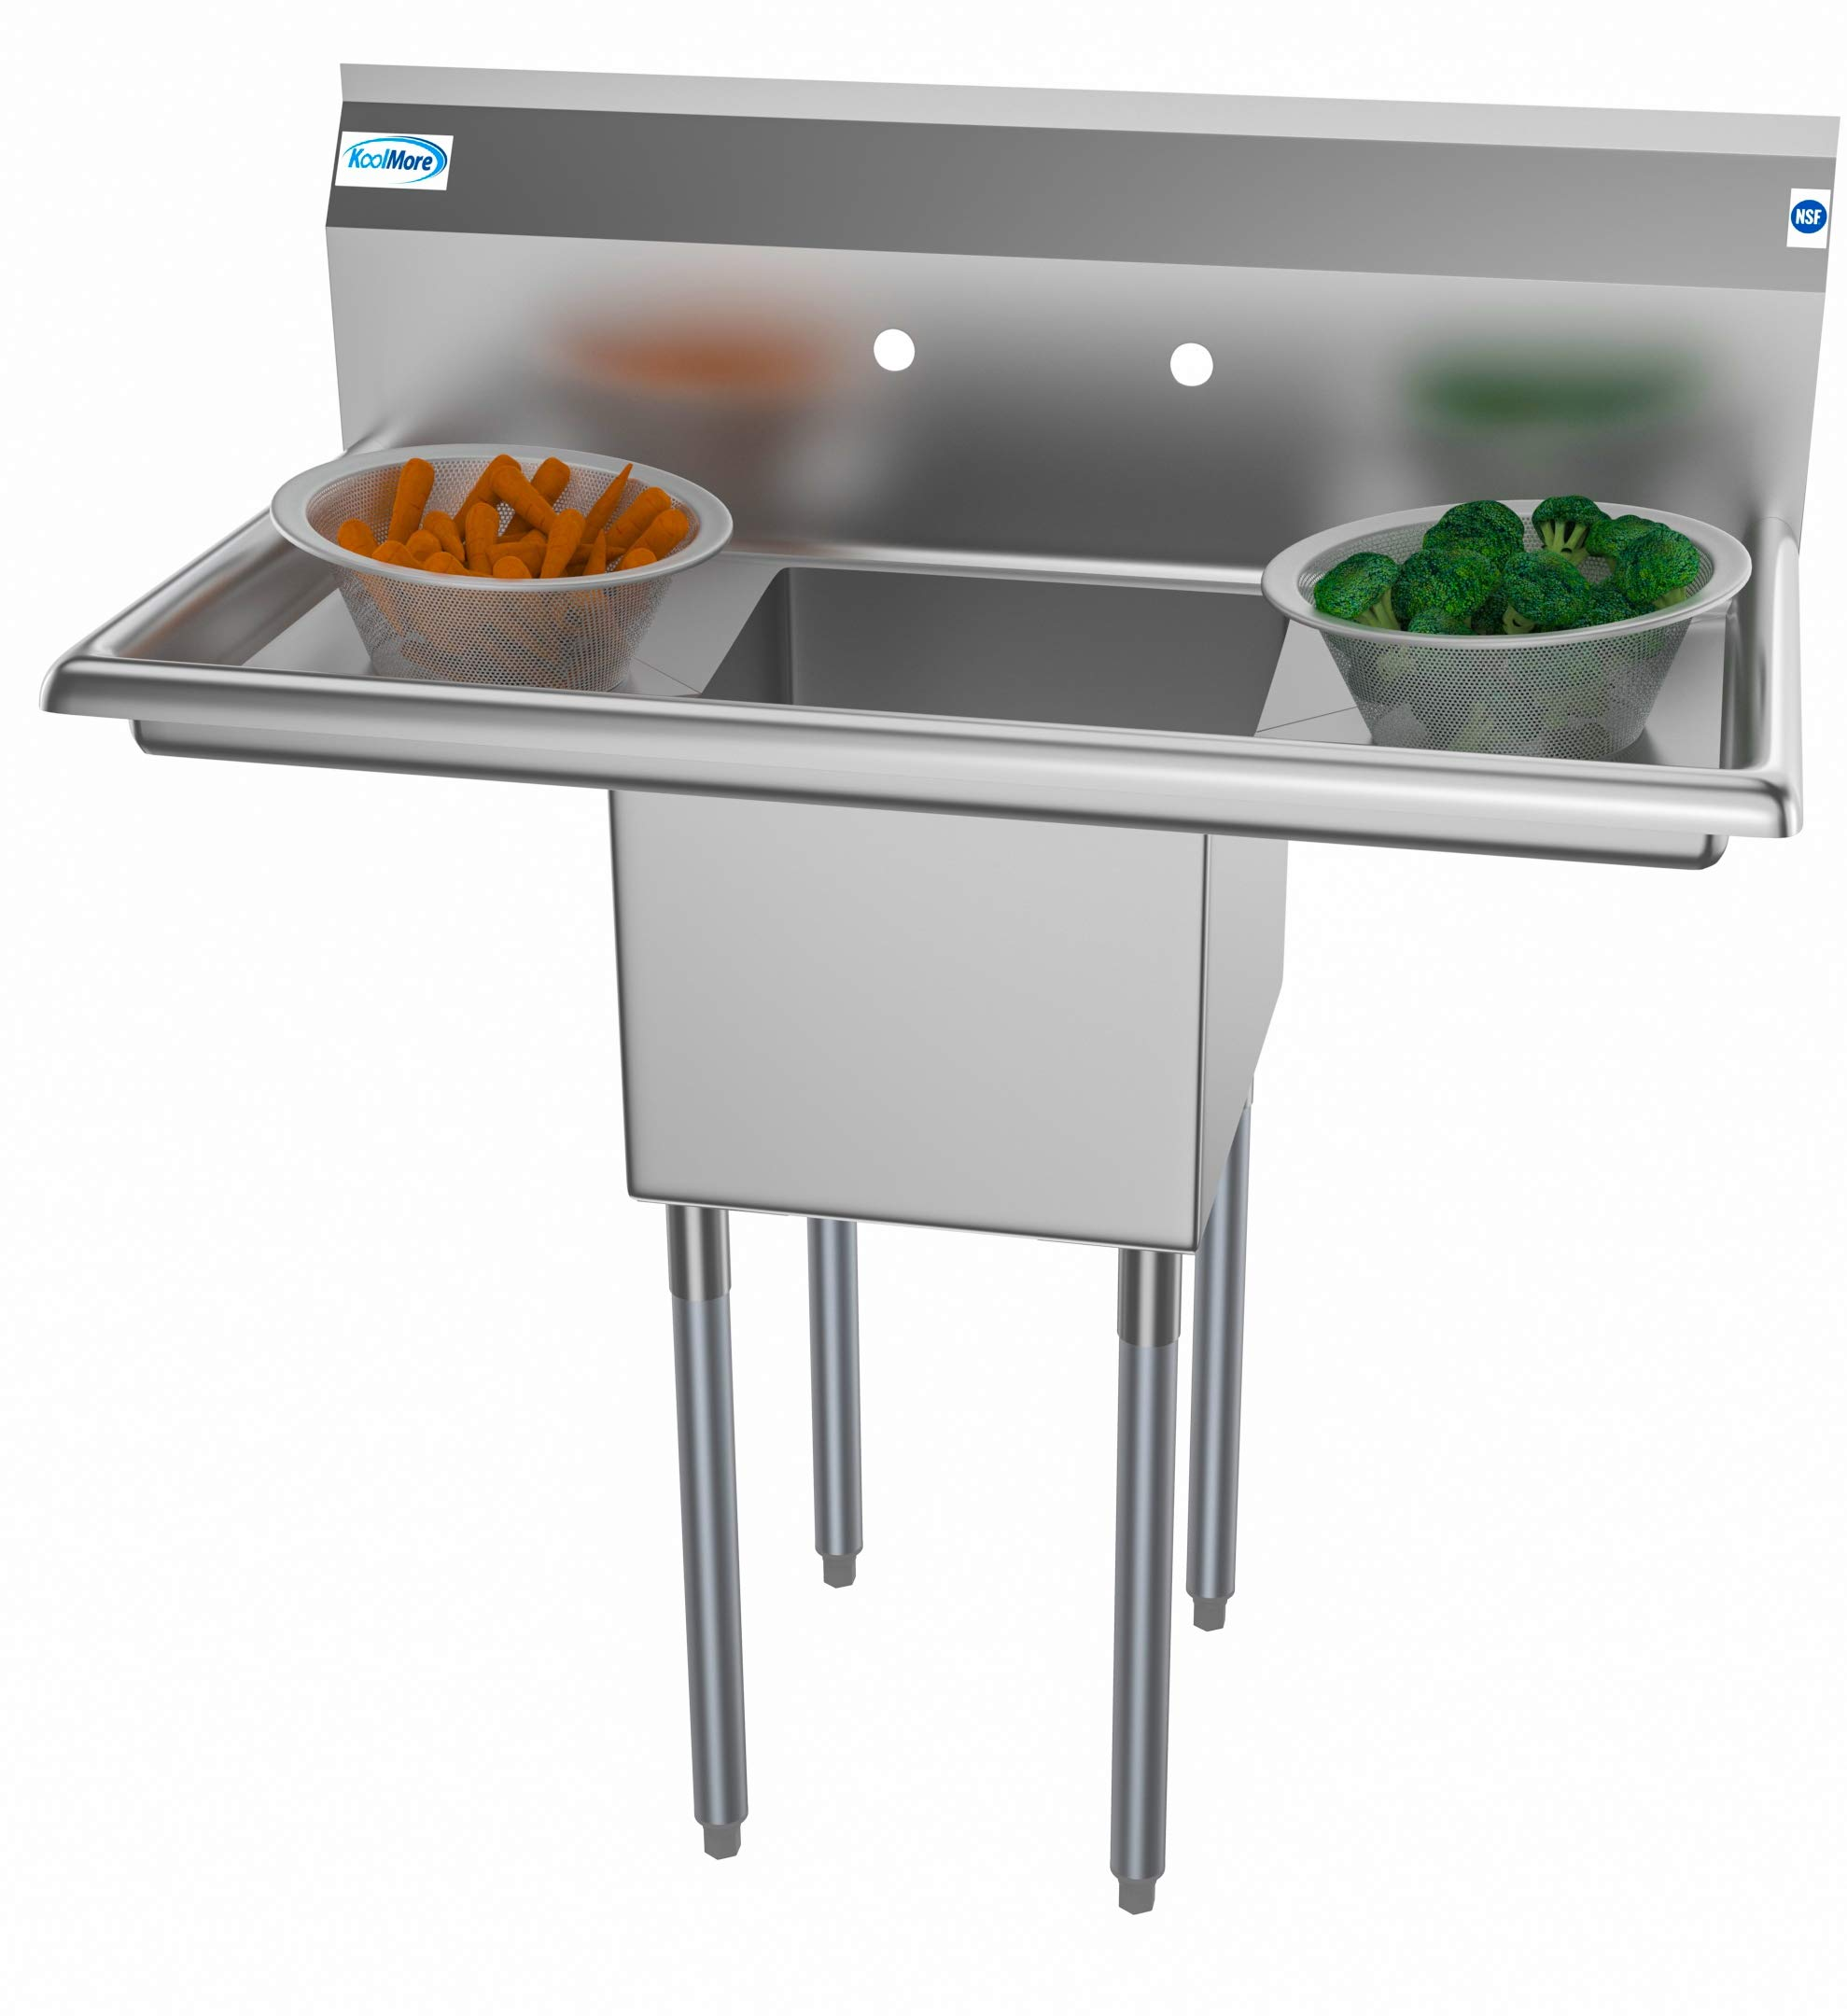 KoolMore 1 Compartment Stainless Steel NSF Commercial Kitchen Prep & Utility Sink with 2 Drainboards - Bowl Size 14'' x 16'' x 11'', Silver